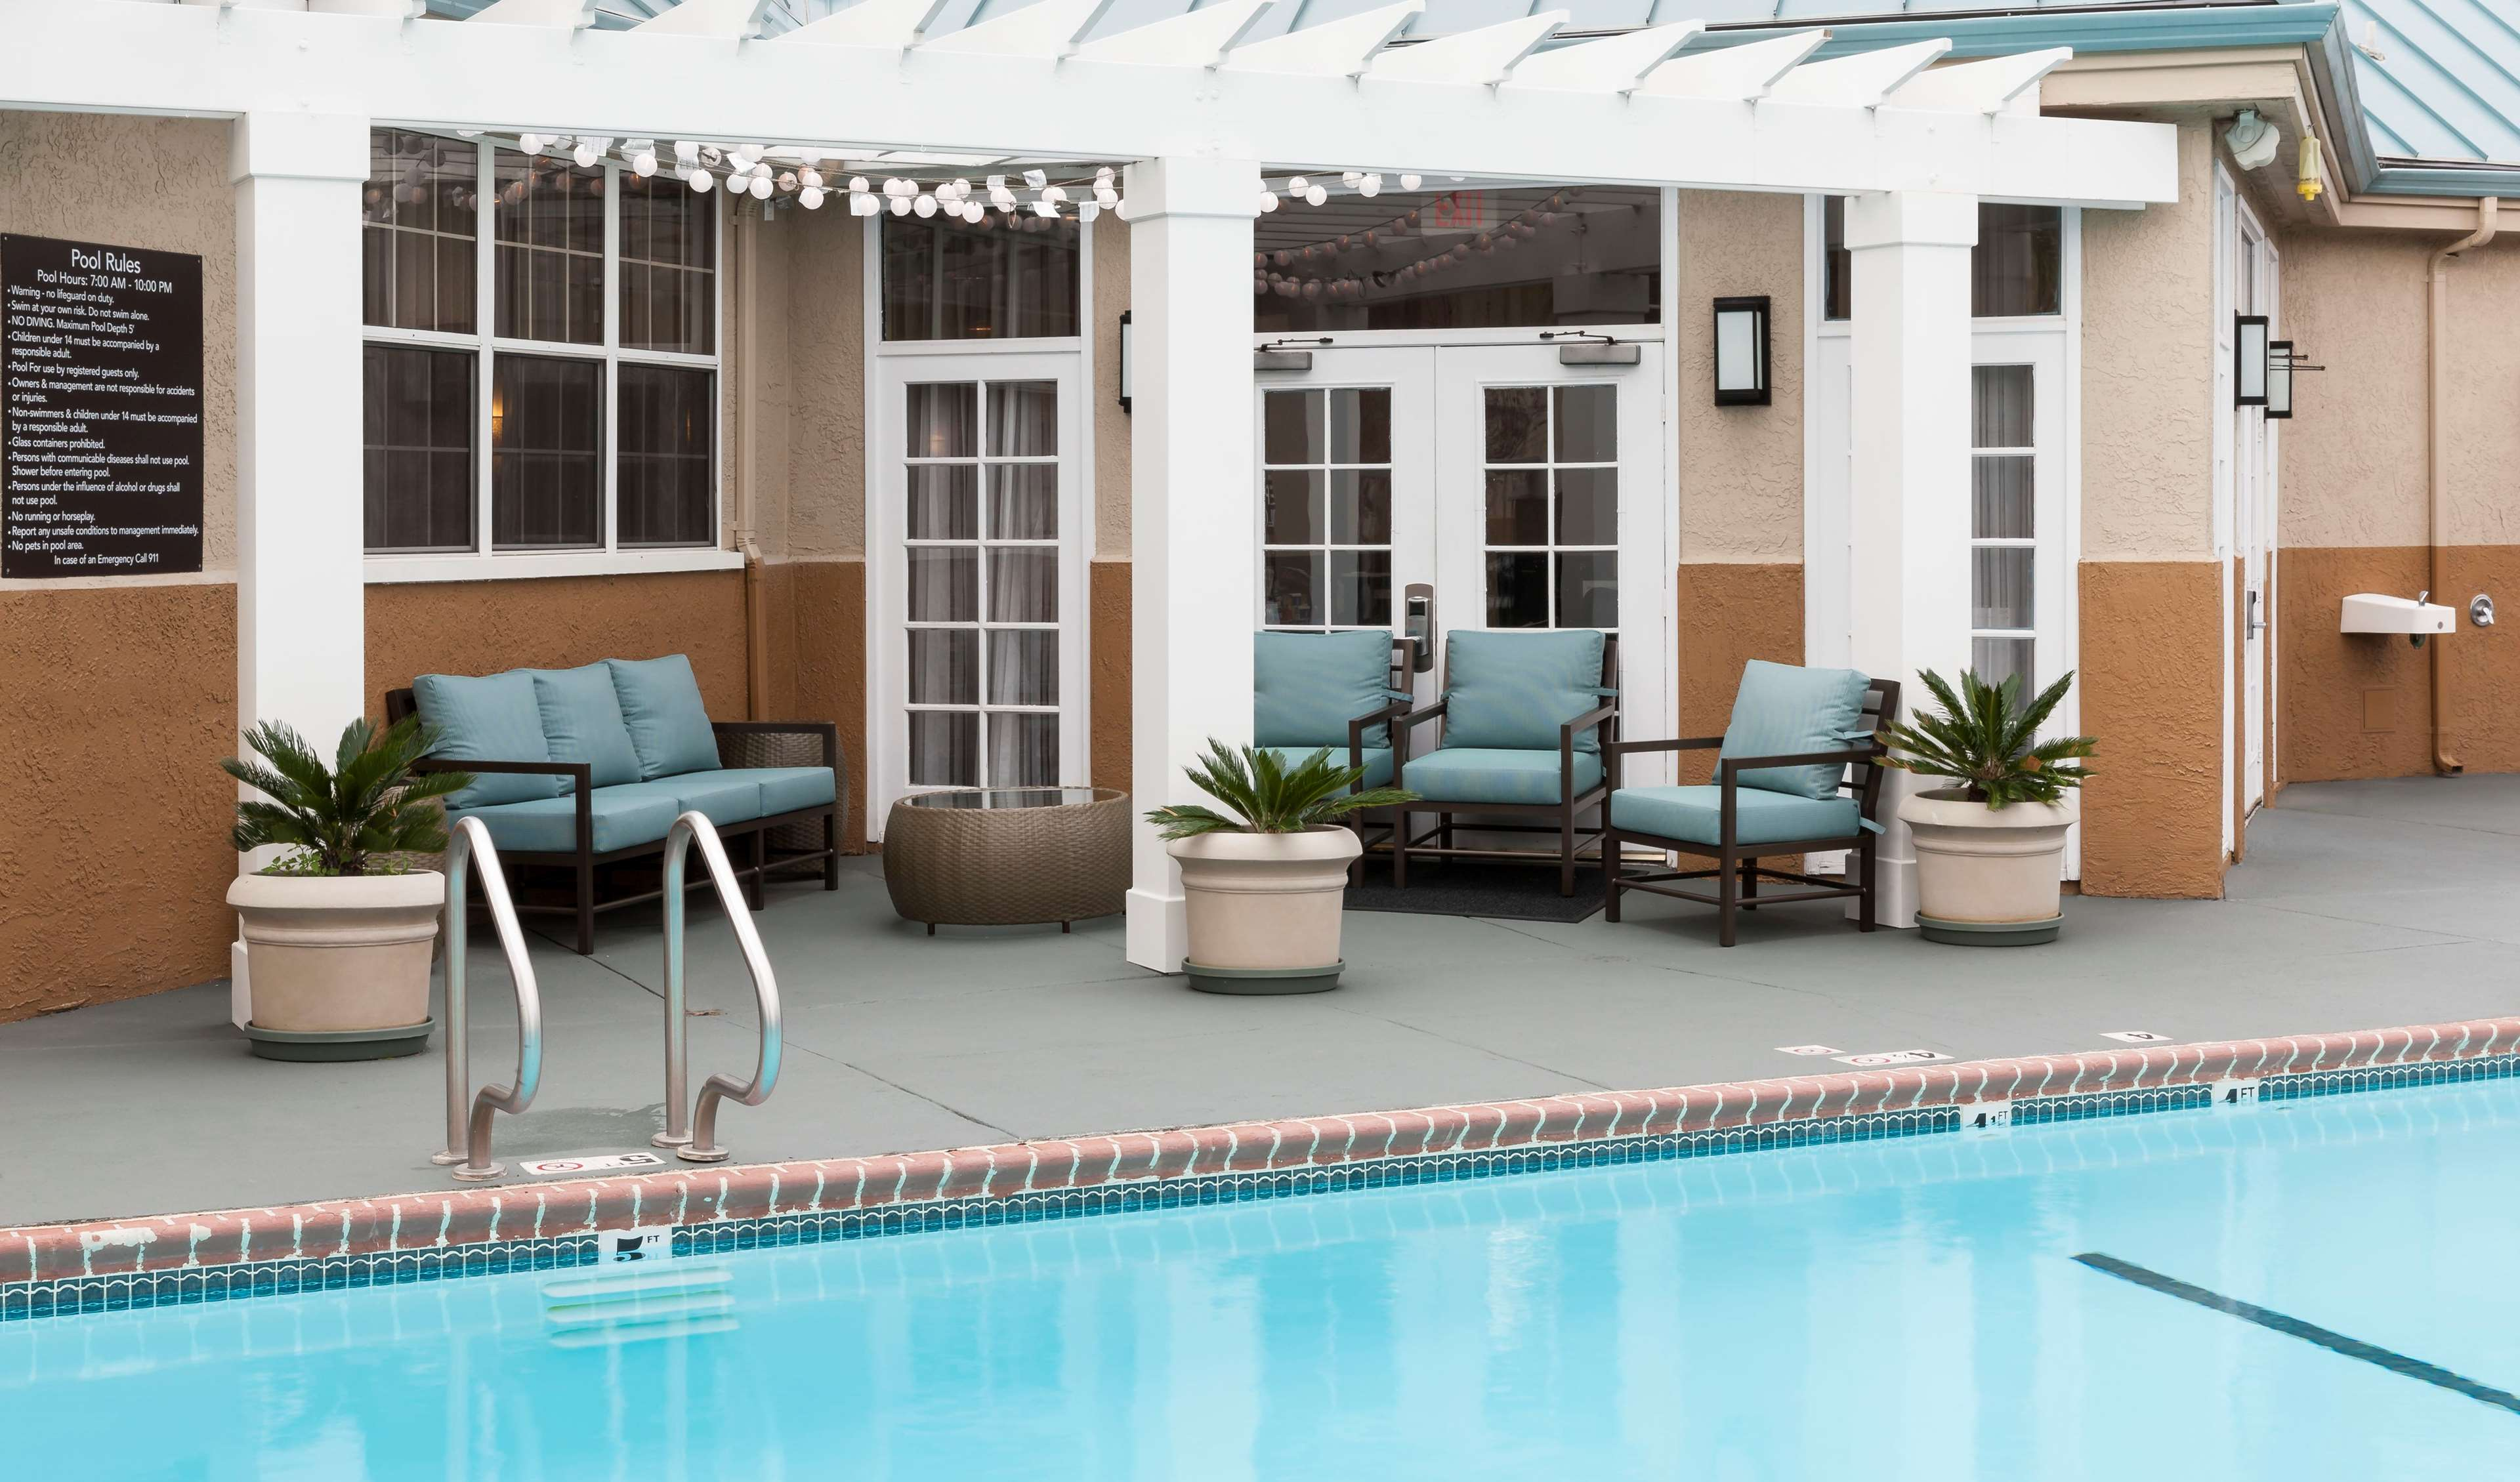 Homewood Suites by Hilton San Jose Airport-Silicon Valley image 3